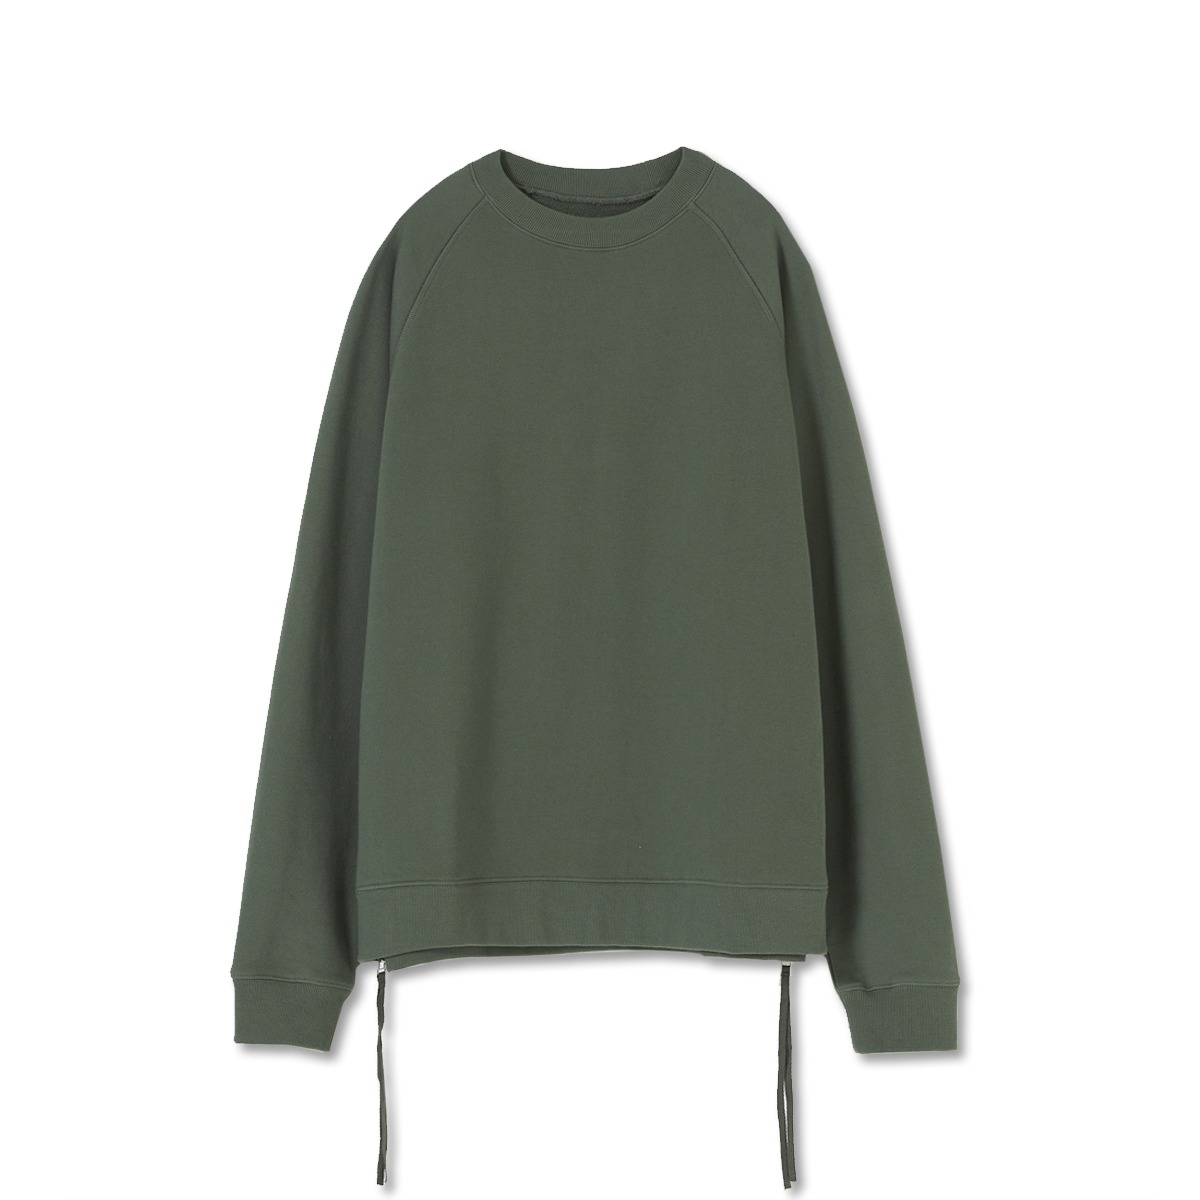 [YOUTH] SIDE ZIP-UP SWEATSHIRT 'GREEN'